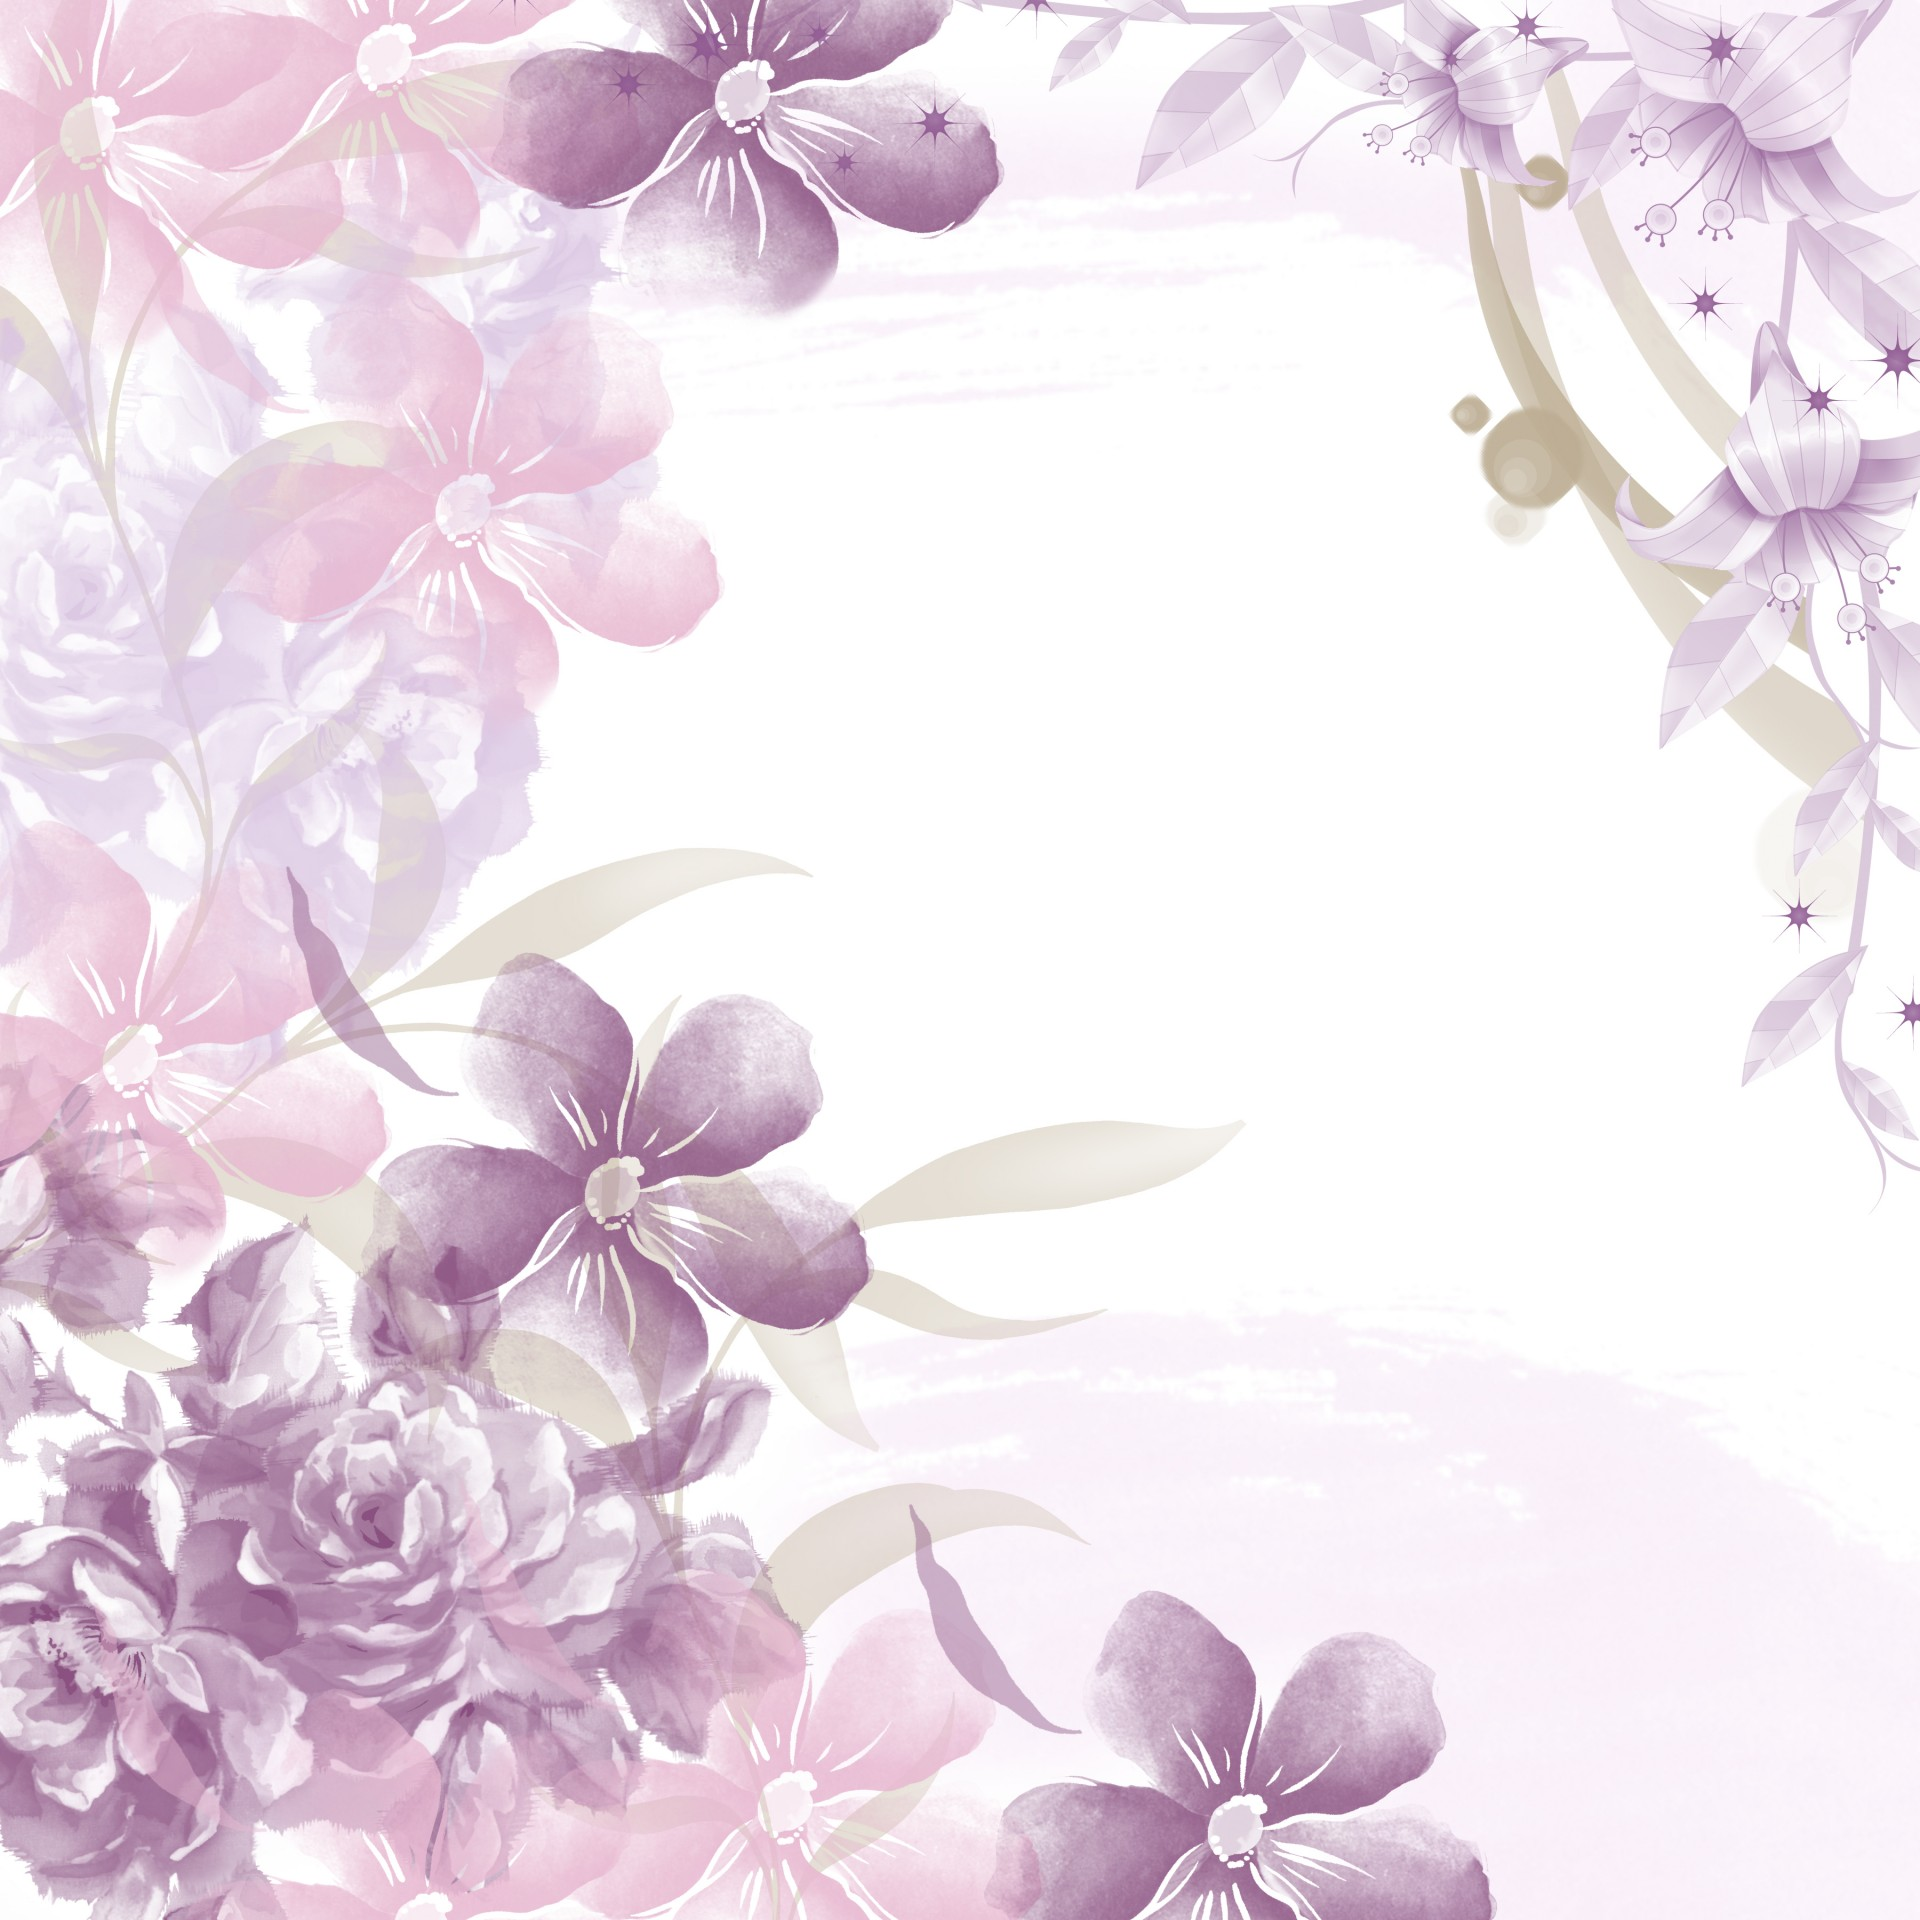 Wallpaper Hd Floral Pink Floral Paper Free Stock Photo Public Domain Pictures